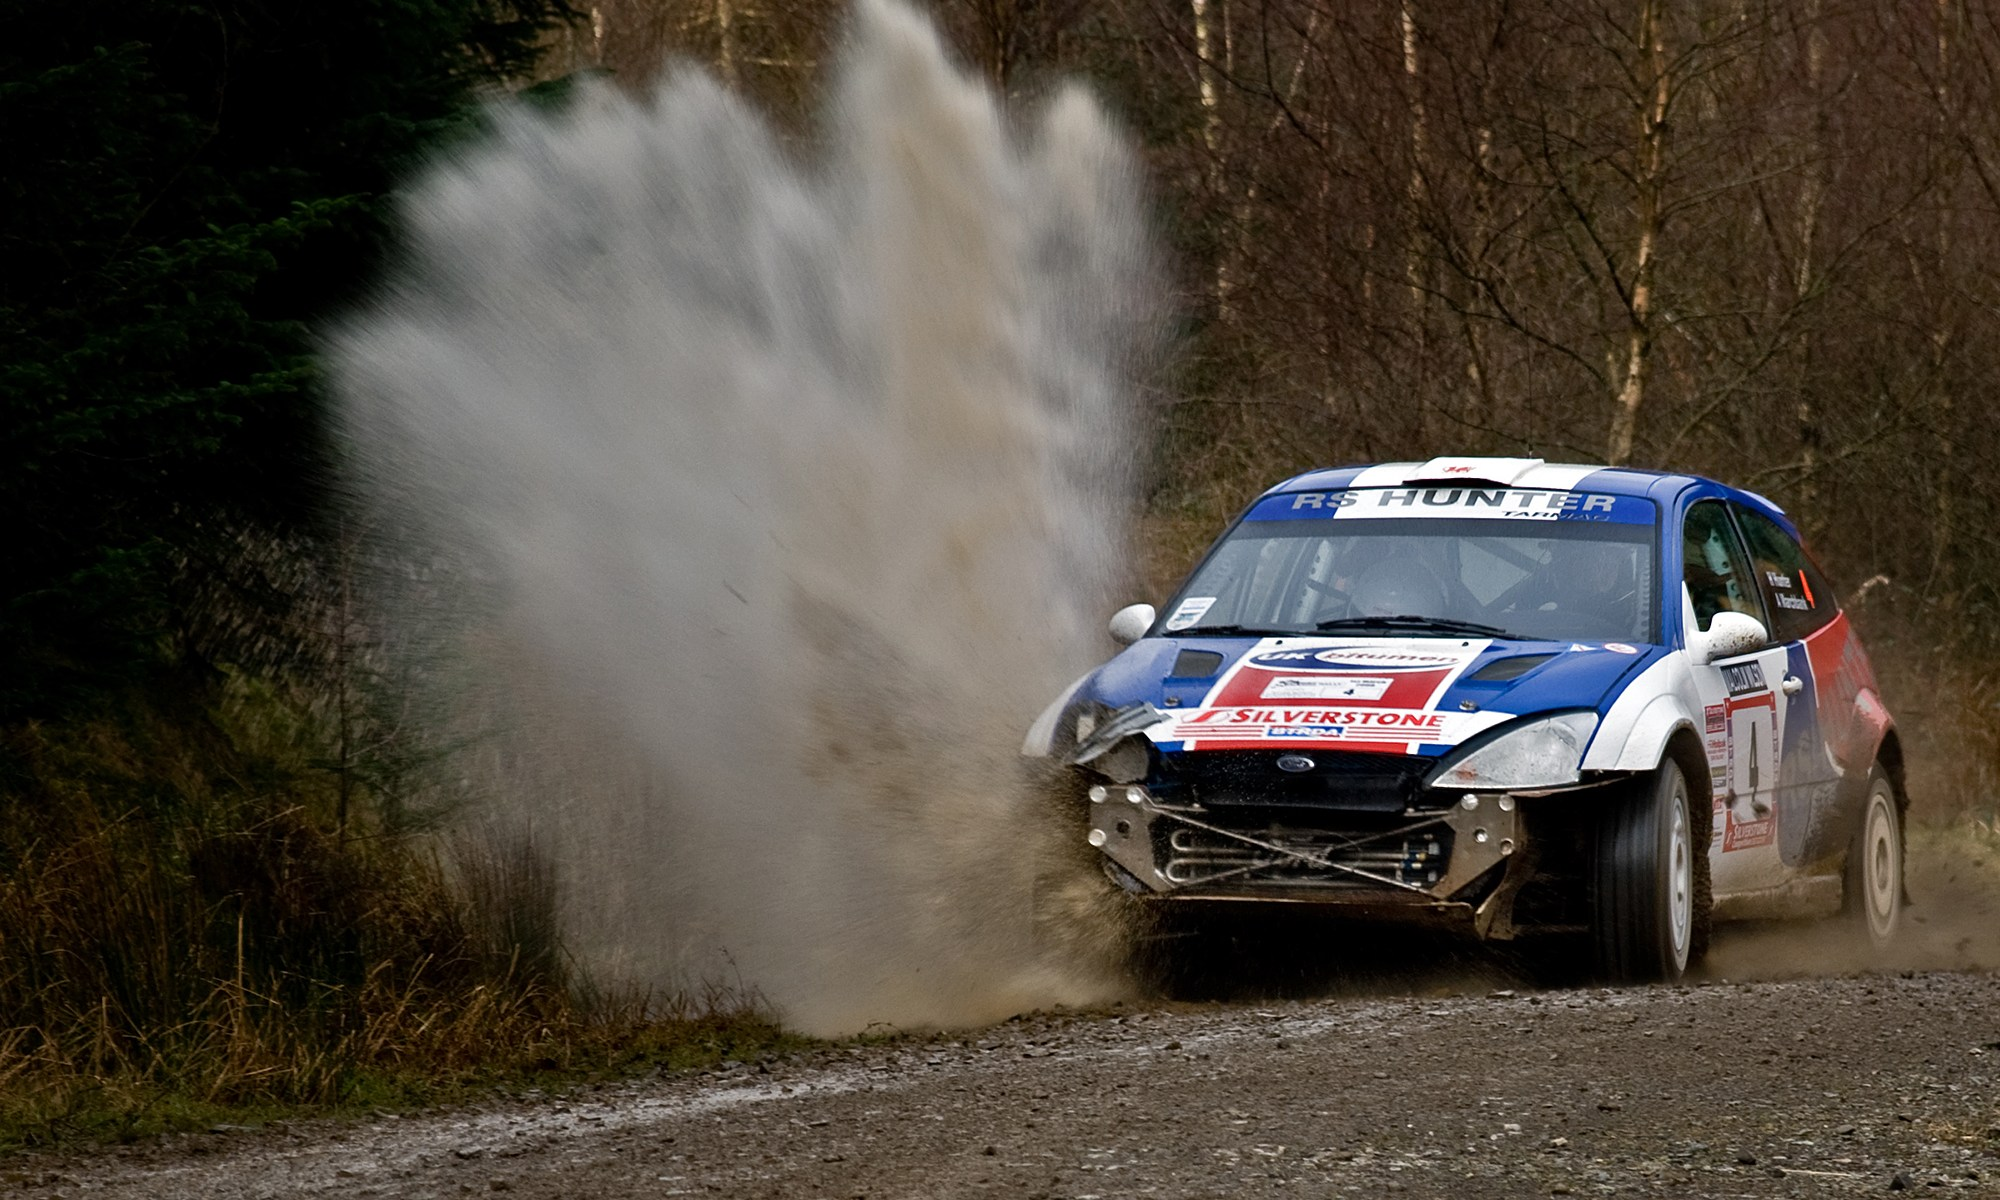 Ford Focus RS on Rally with Splash